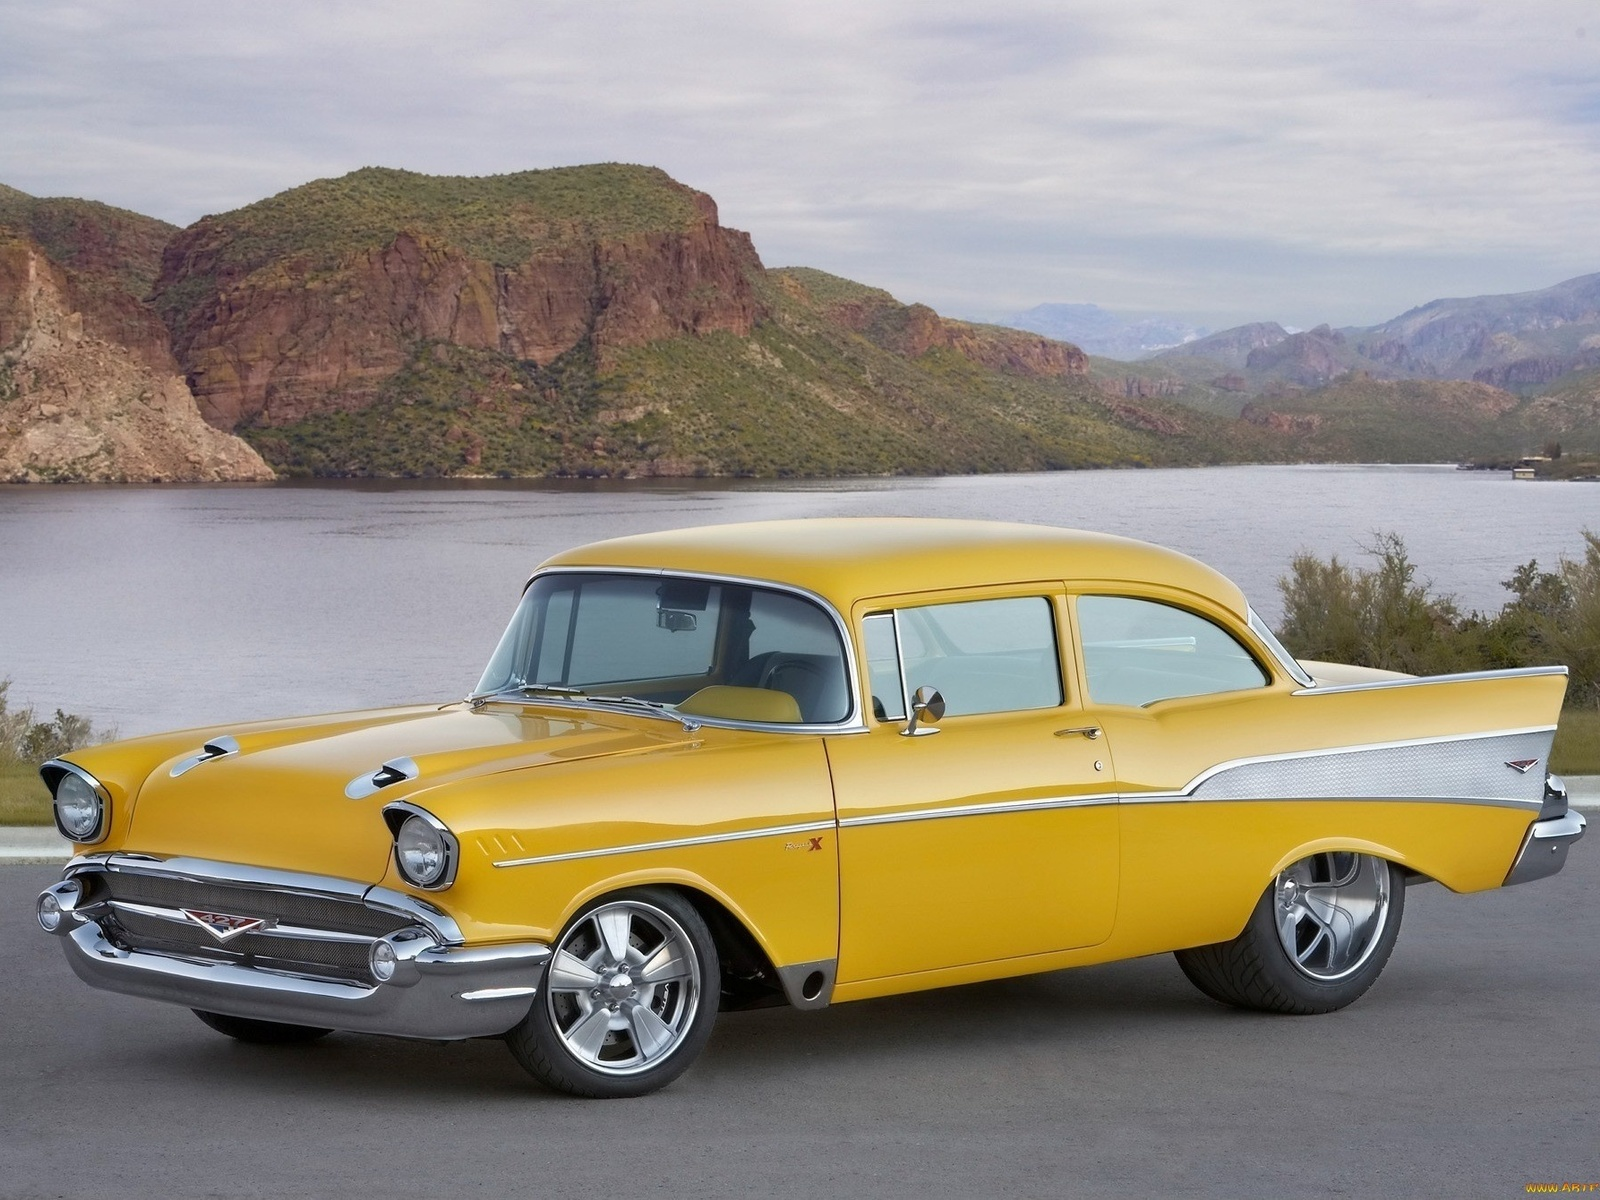 american, classic, car, chevrolet, bel air